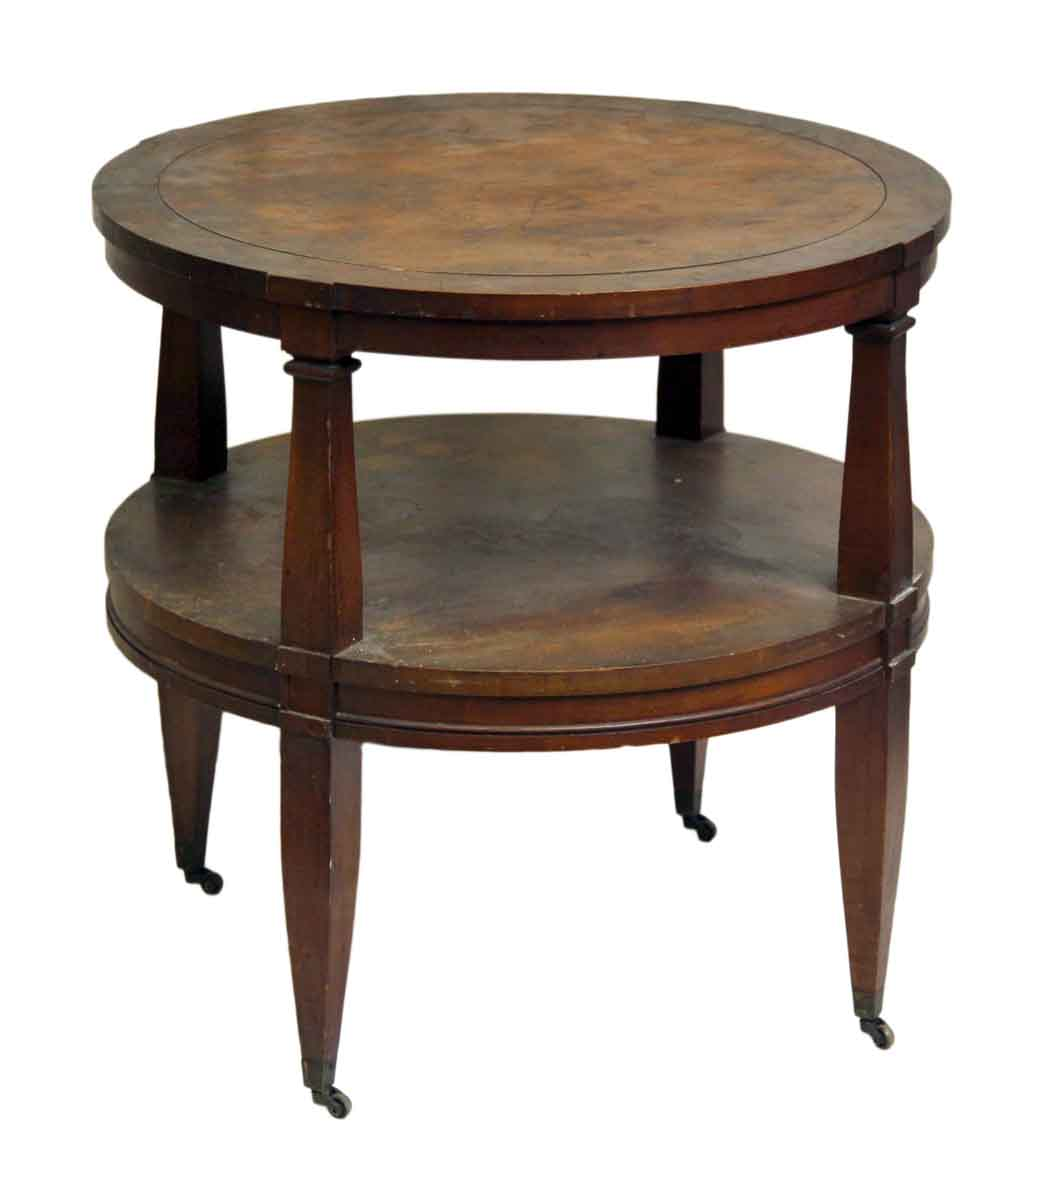 Round Coffee Table On Wheels Round Wood Coffee Table On Wheels Olde Good Things